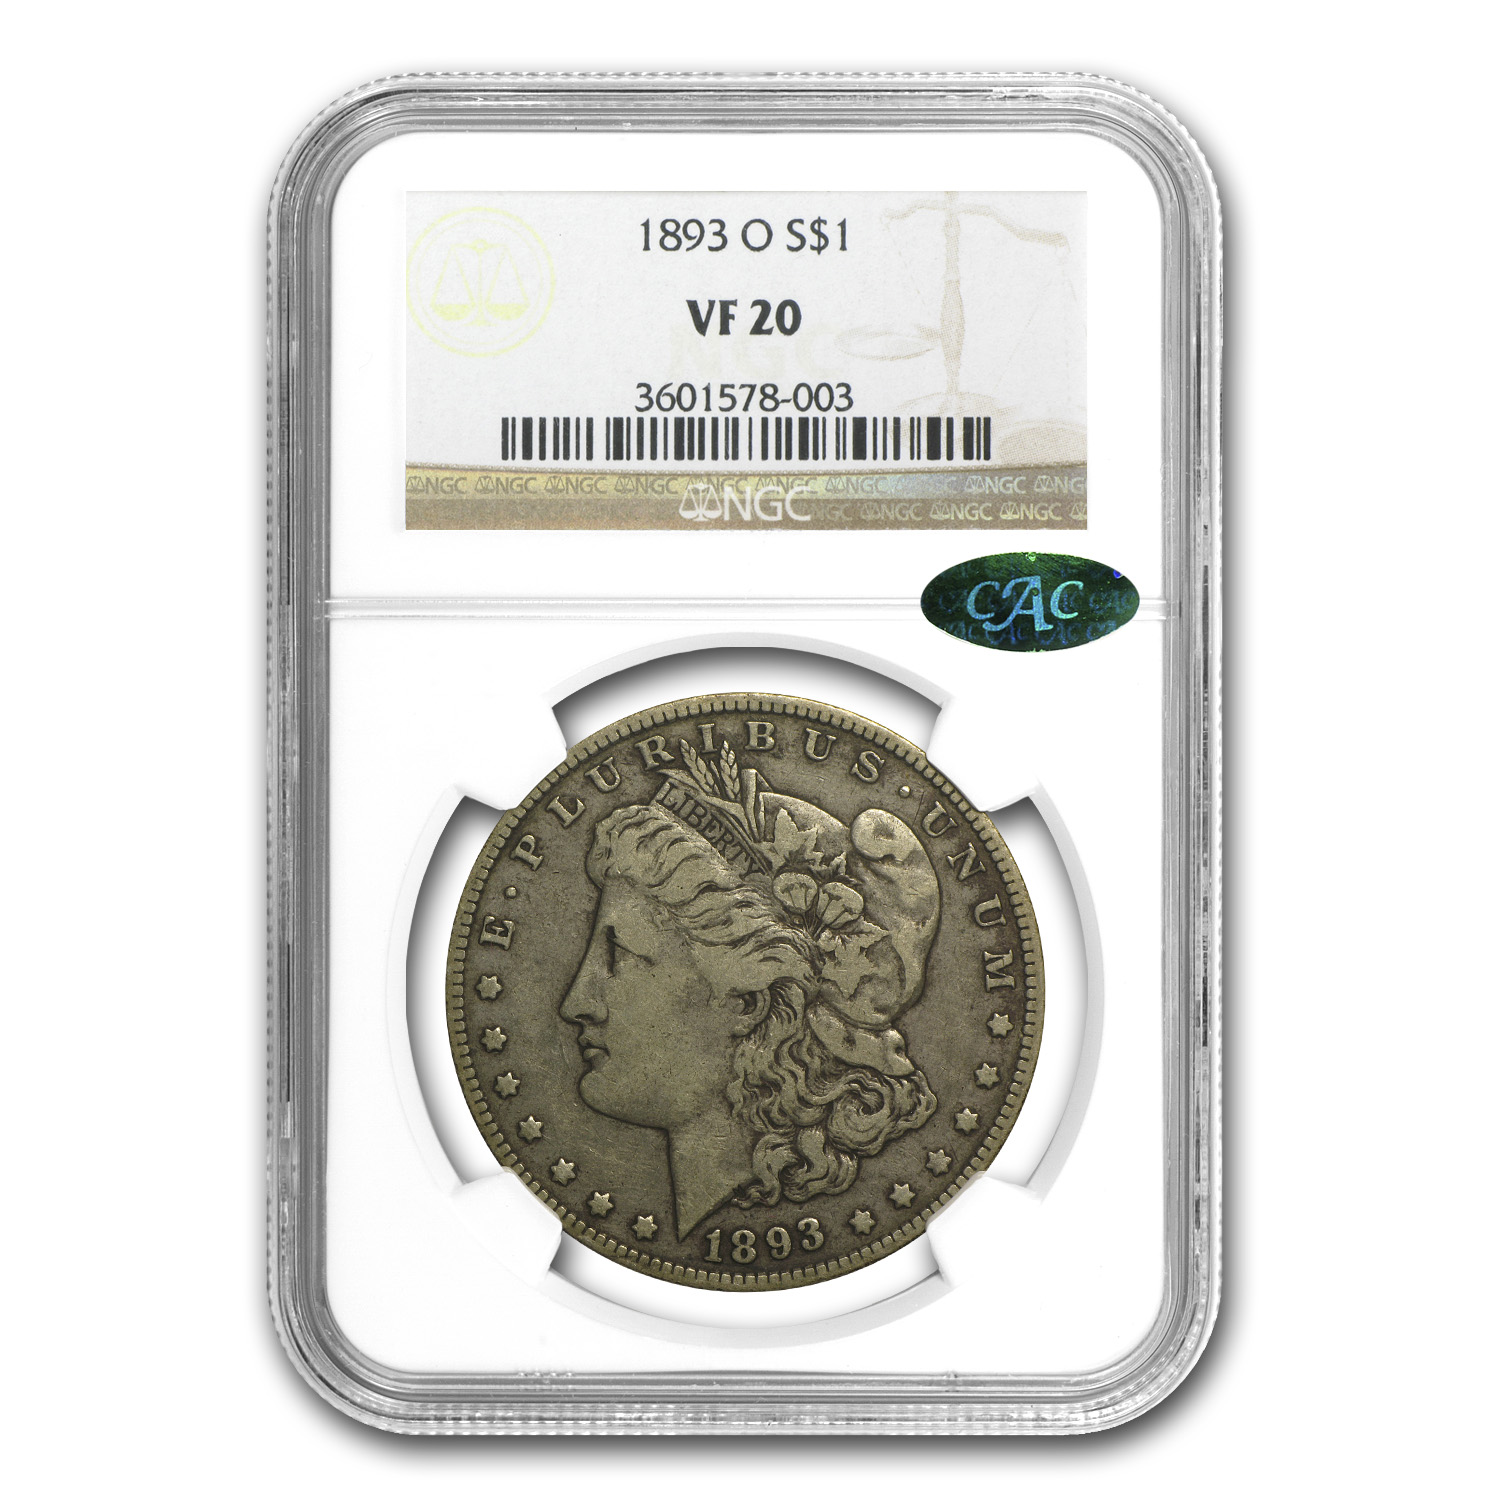 1893-O Morgan Dollar - Very Fine-20 NGC - CAC